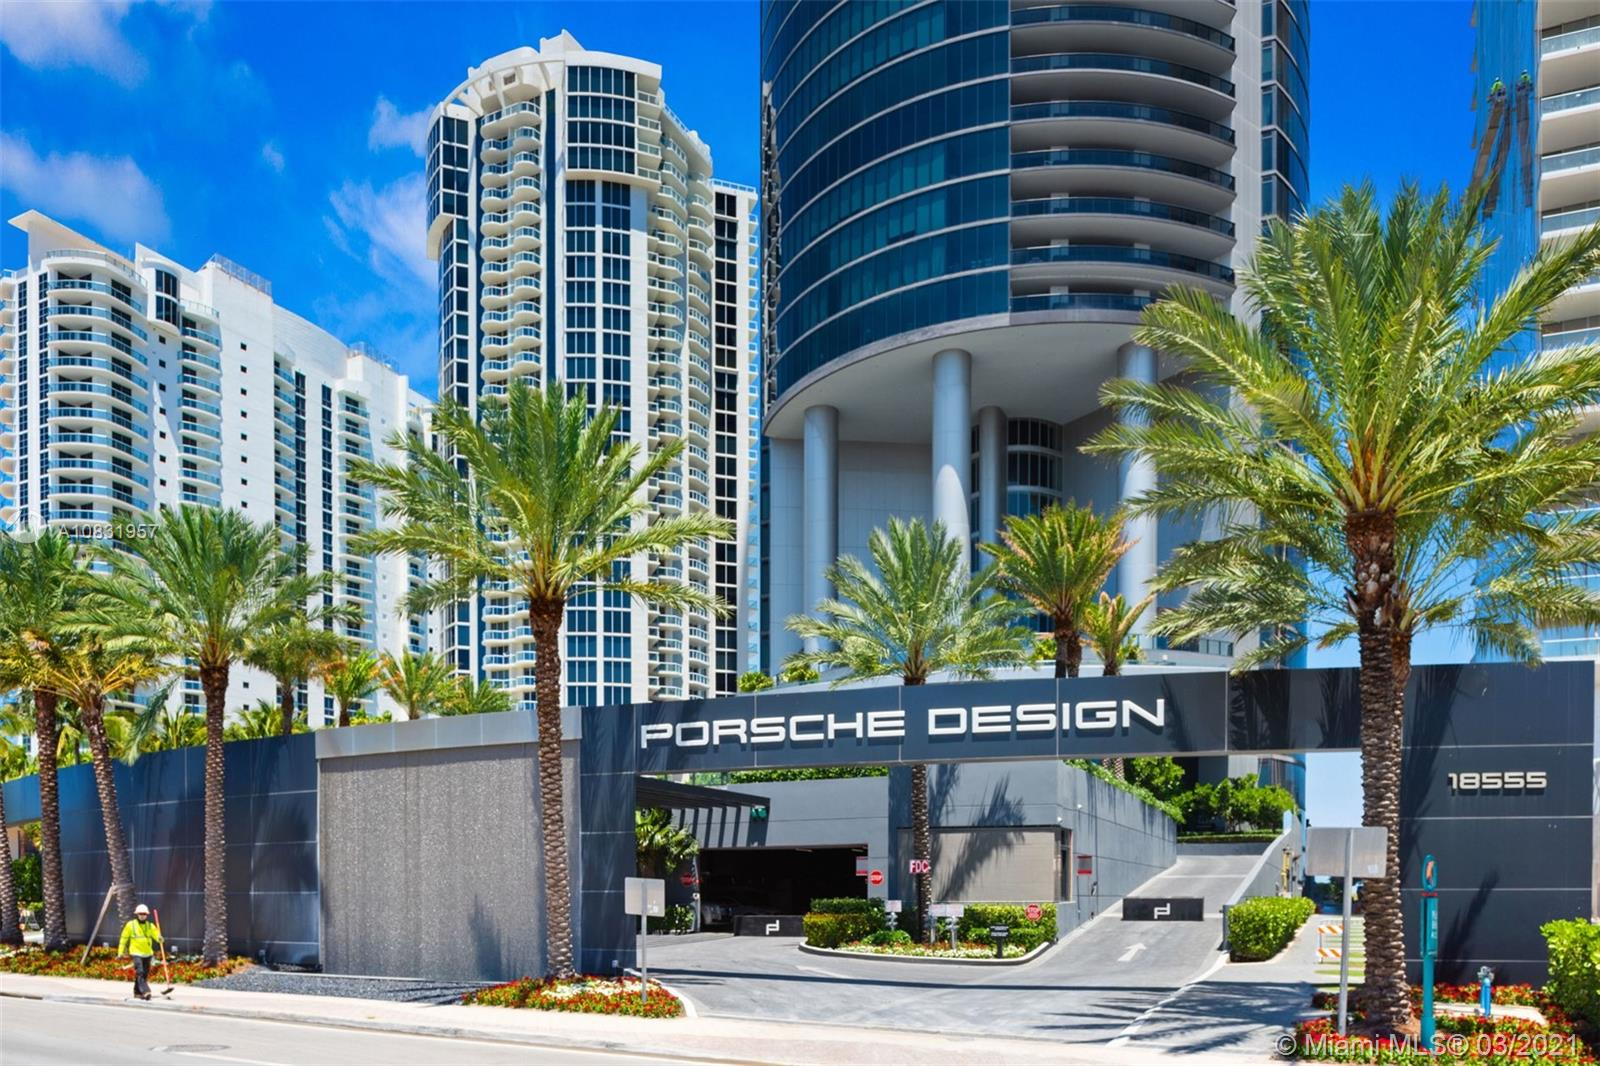 """Porsche Design Tower. With its striking design, this first-ever Porsche Building sets a new innovative standard of living. Designer Ready Residence offers 3 bed/4.5 Bath, floor to ceiling windows from every room with beautiful Ocean views, private in-unit elevator access, top-of-the-line Poggenpohl Kitchen, Miele appliances, an expansive terrace with plunge pool and summer kitchen, and a double built-in """"Sky Garage"""". Building 5 star amenities include an integrated automotive elevator system, private chef at FUEL restaurant, lounge bar, an Ocean front fitness center, SPA, yoga, Vichy shower, treatment rooms, sunset deck, beachside pool(s),  theater, billiard, virtual golf, race car simulators, car concierge and beach front access."""